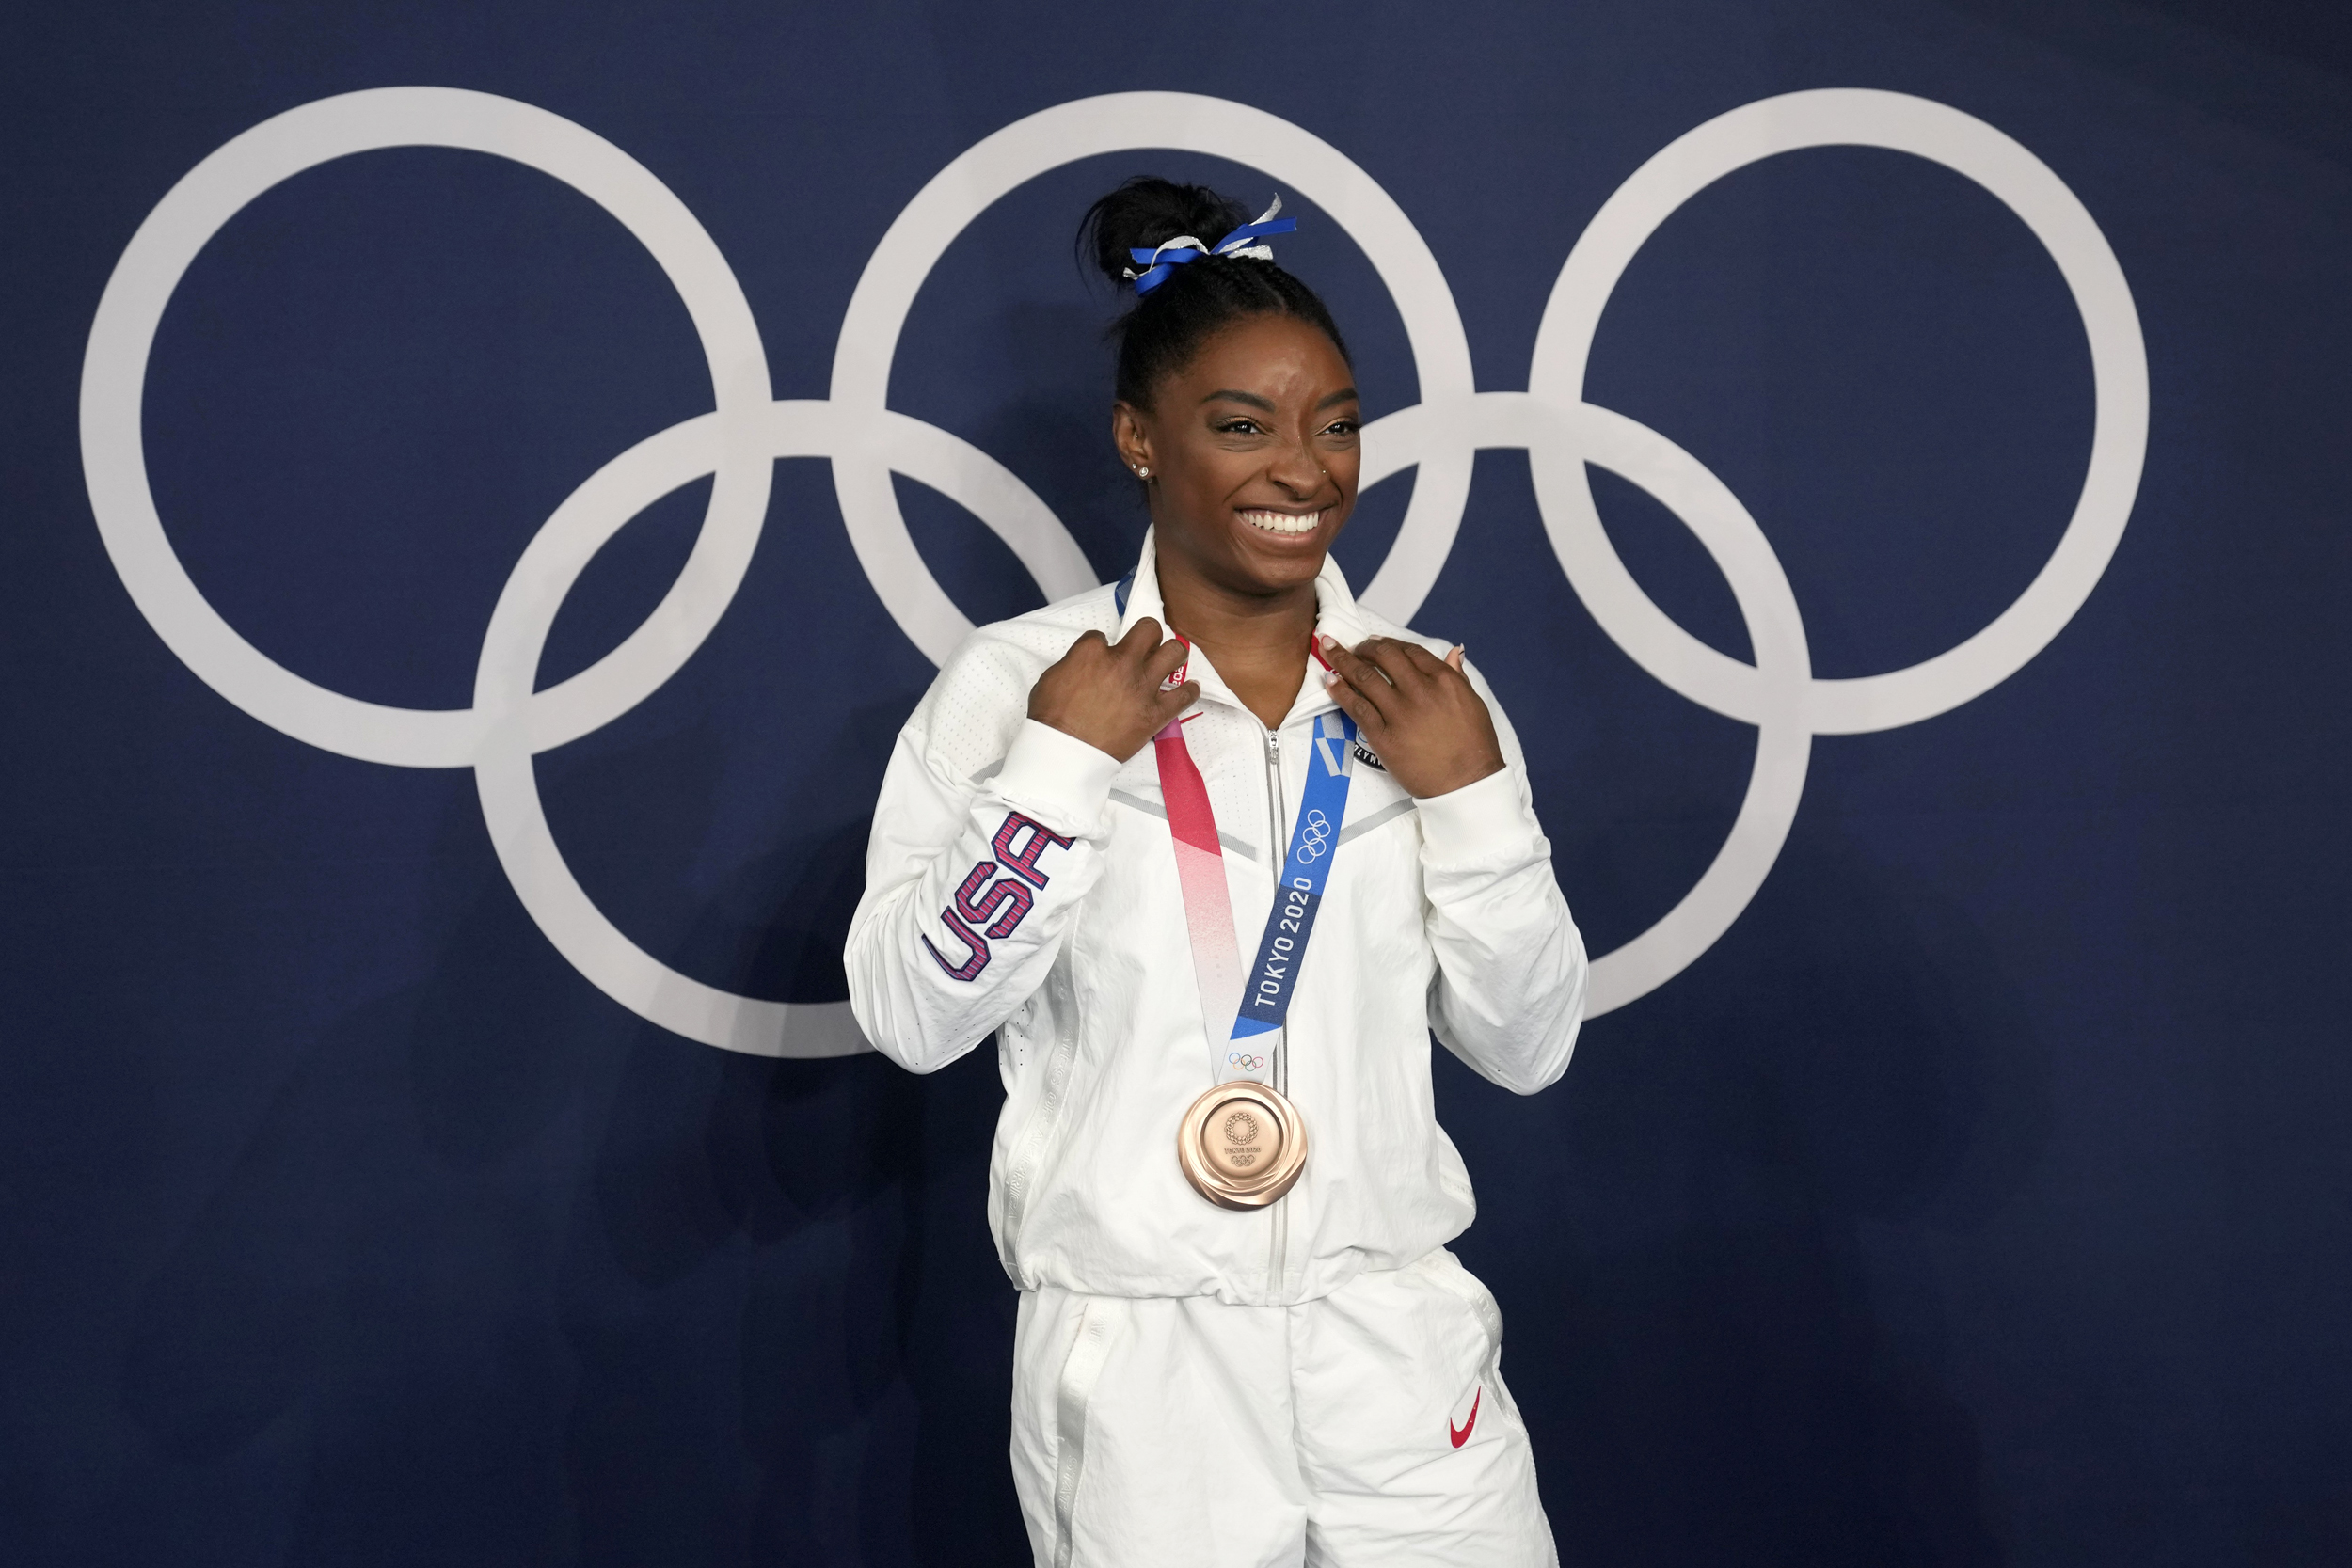 Simone Biles says Tokyo bronze means more than all her golds